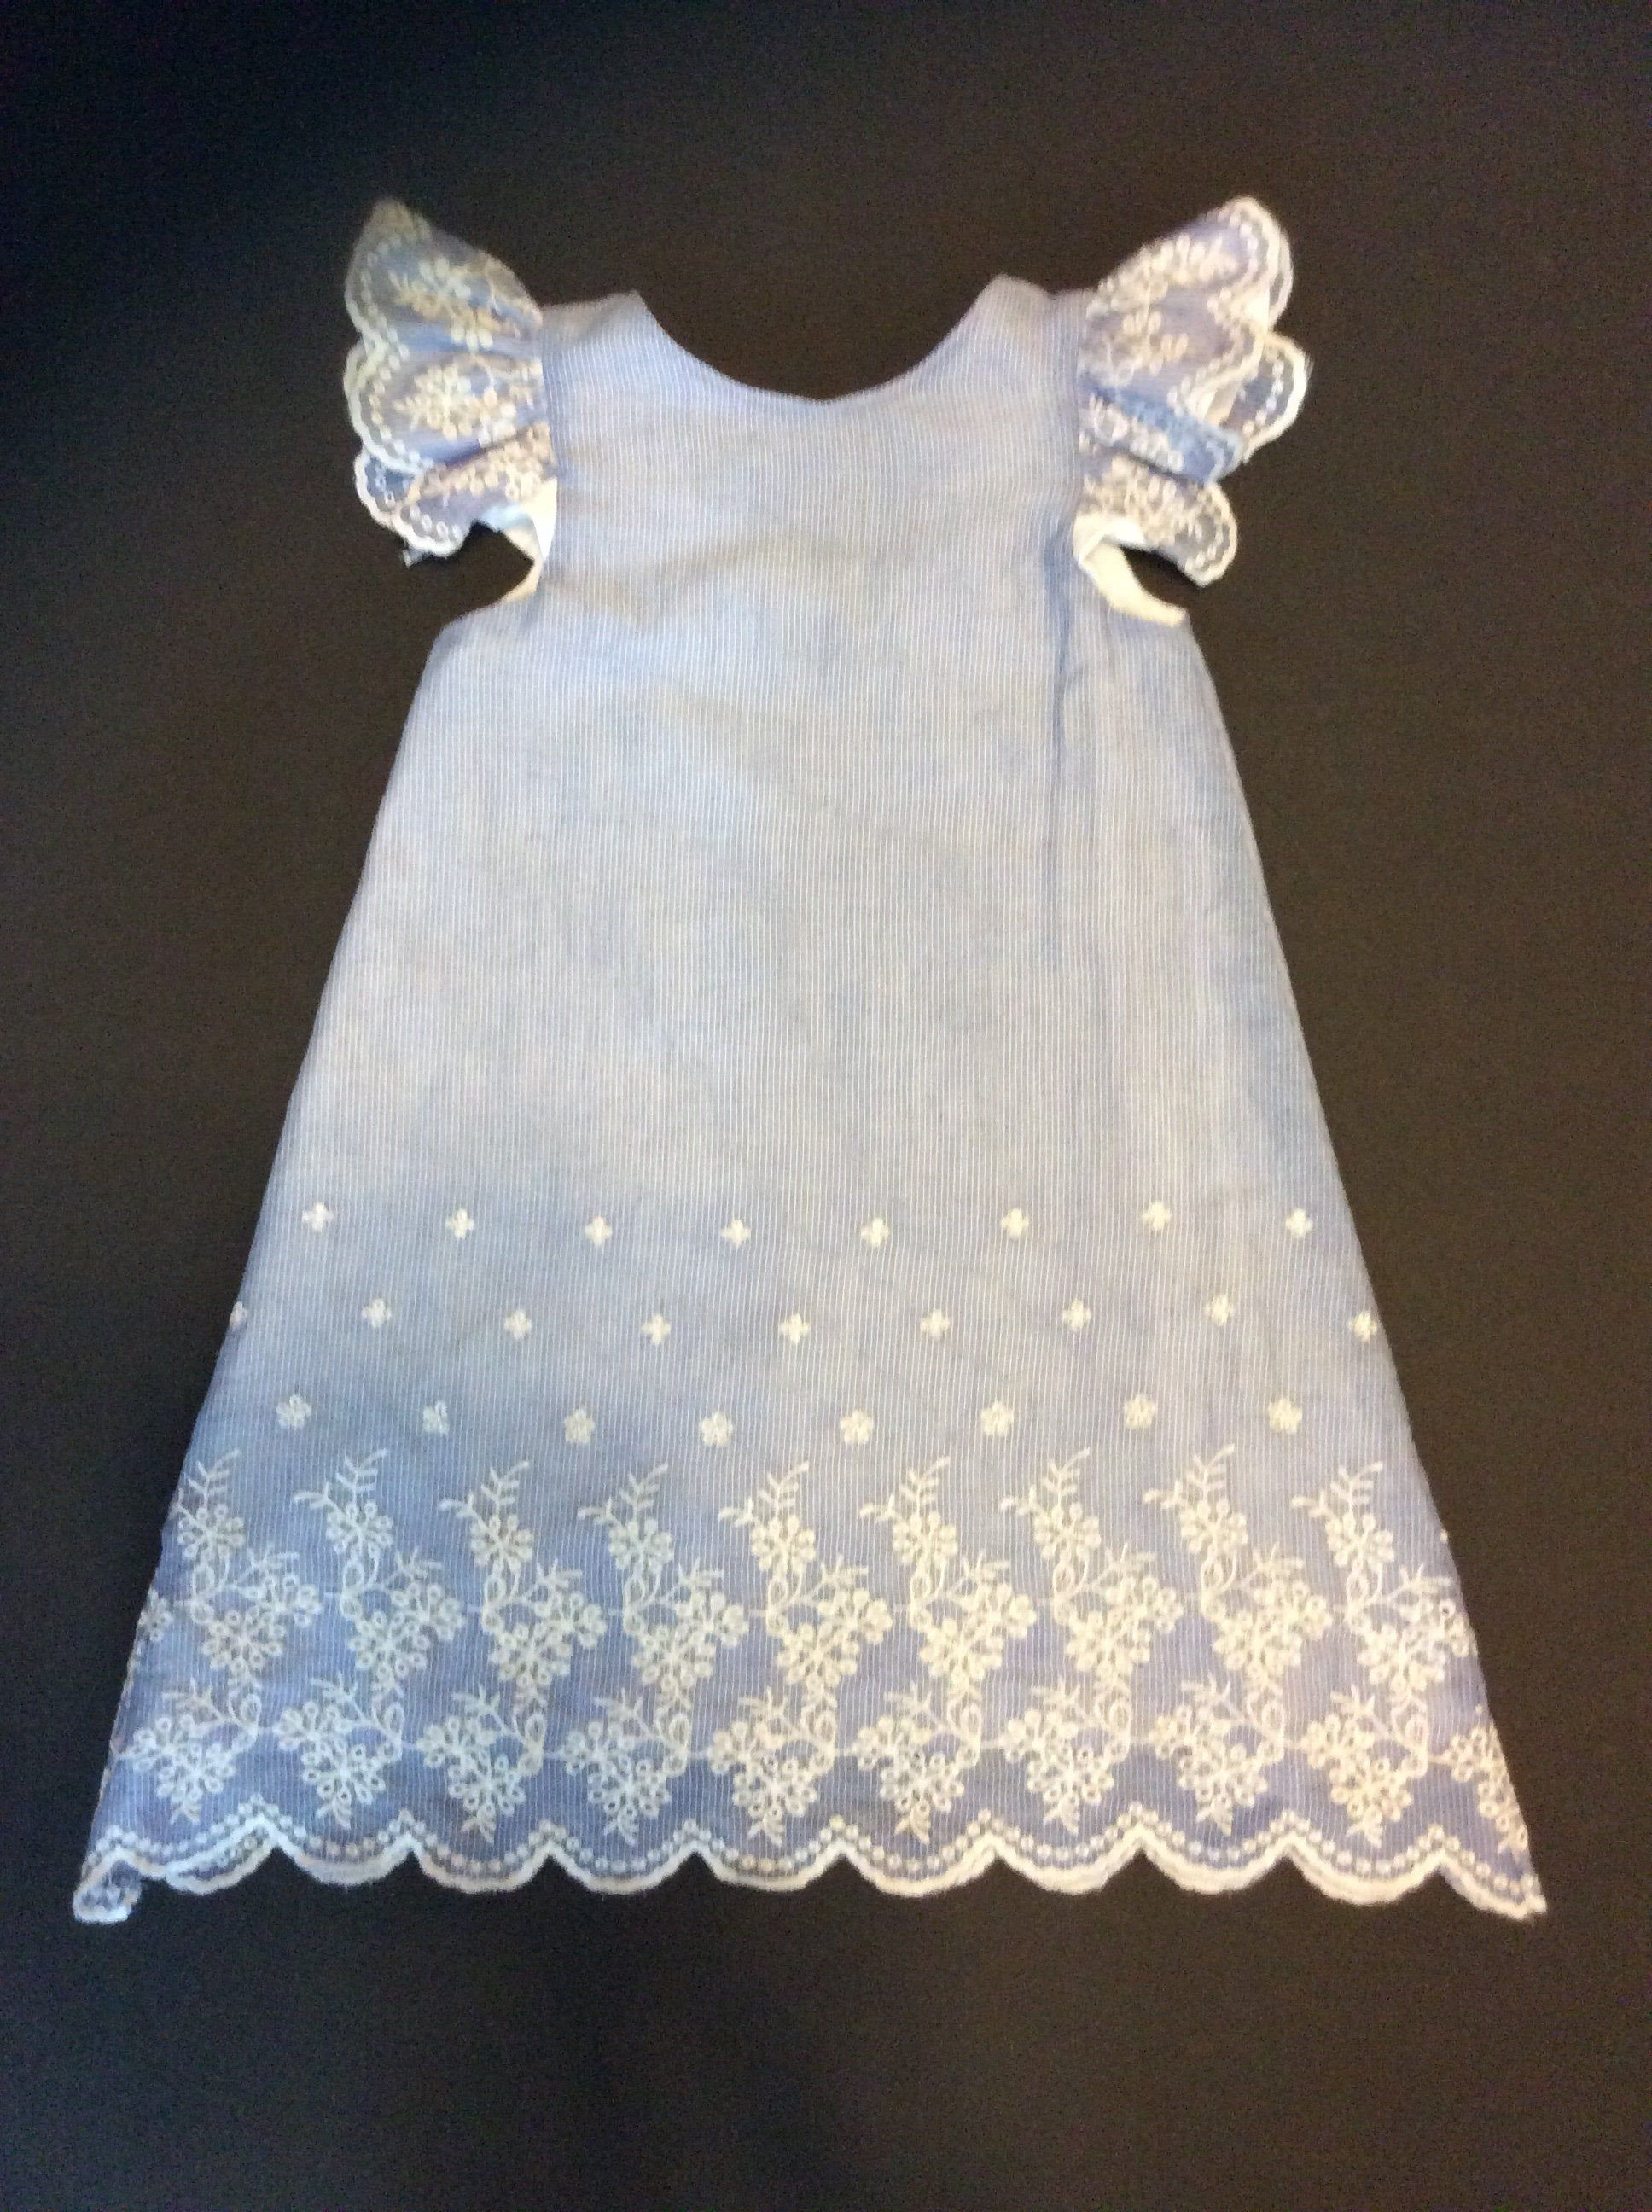 A Line Toddler Dress In A Soft Blue And White Stripe Chambray Etsy Toddler Dress Girls Lace Dress Casual Dresses For Women [ 2592 x 1936 Pixel ]